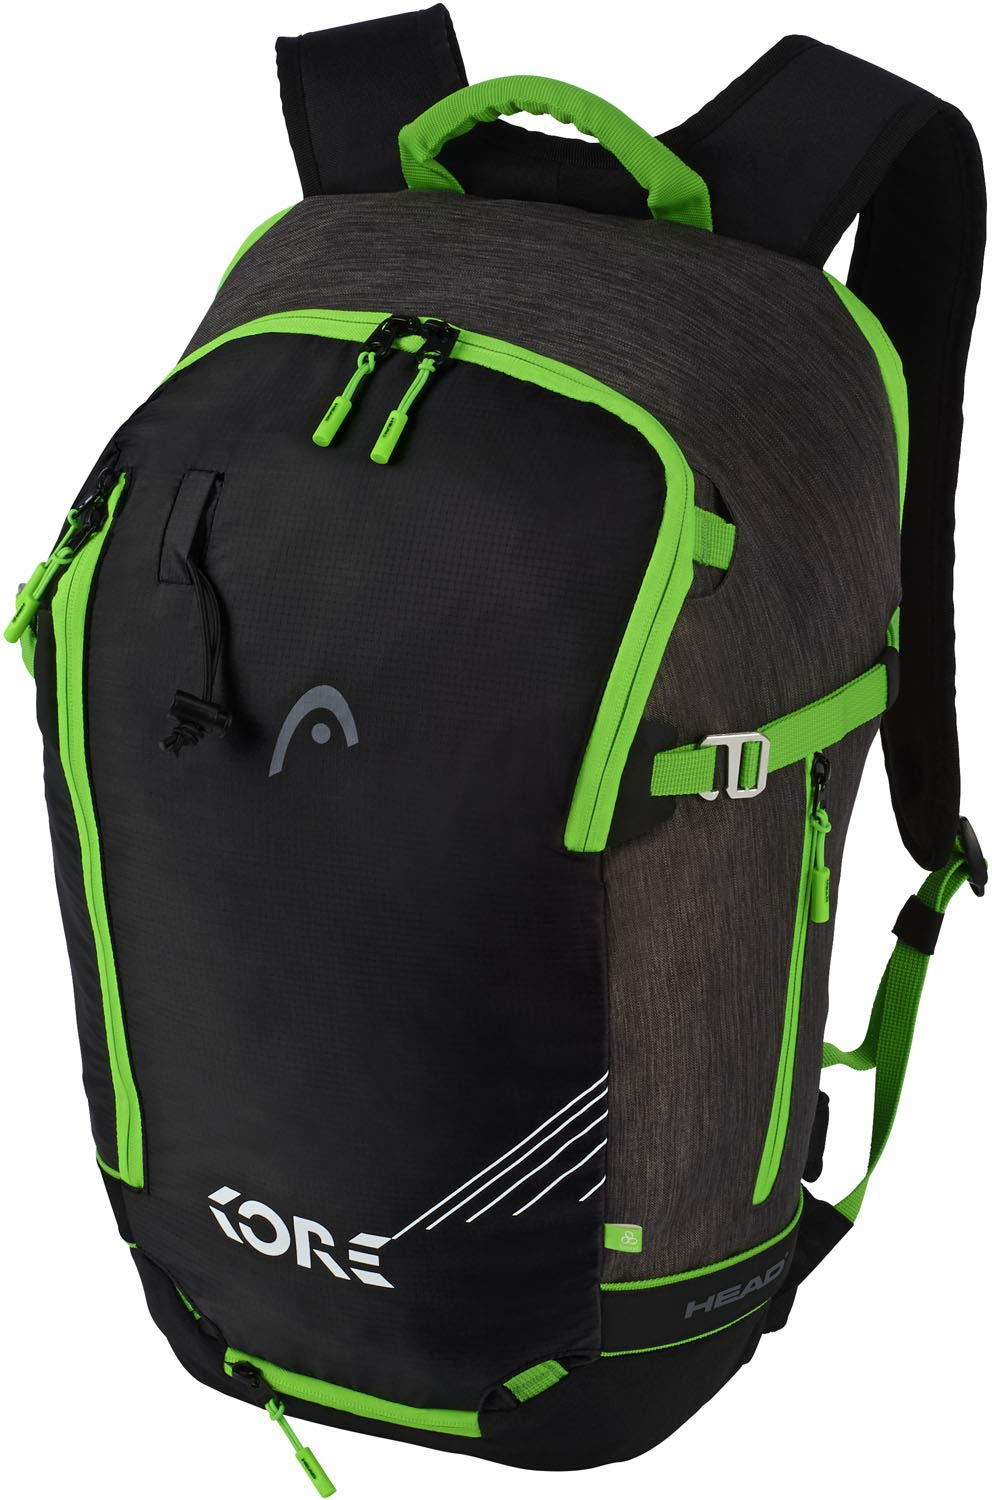 HEAD Freeride EOP 1.0 Skirucksack Anthracite/Neon Green, 30 x 50 x 21 cm, 20 L